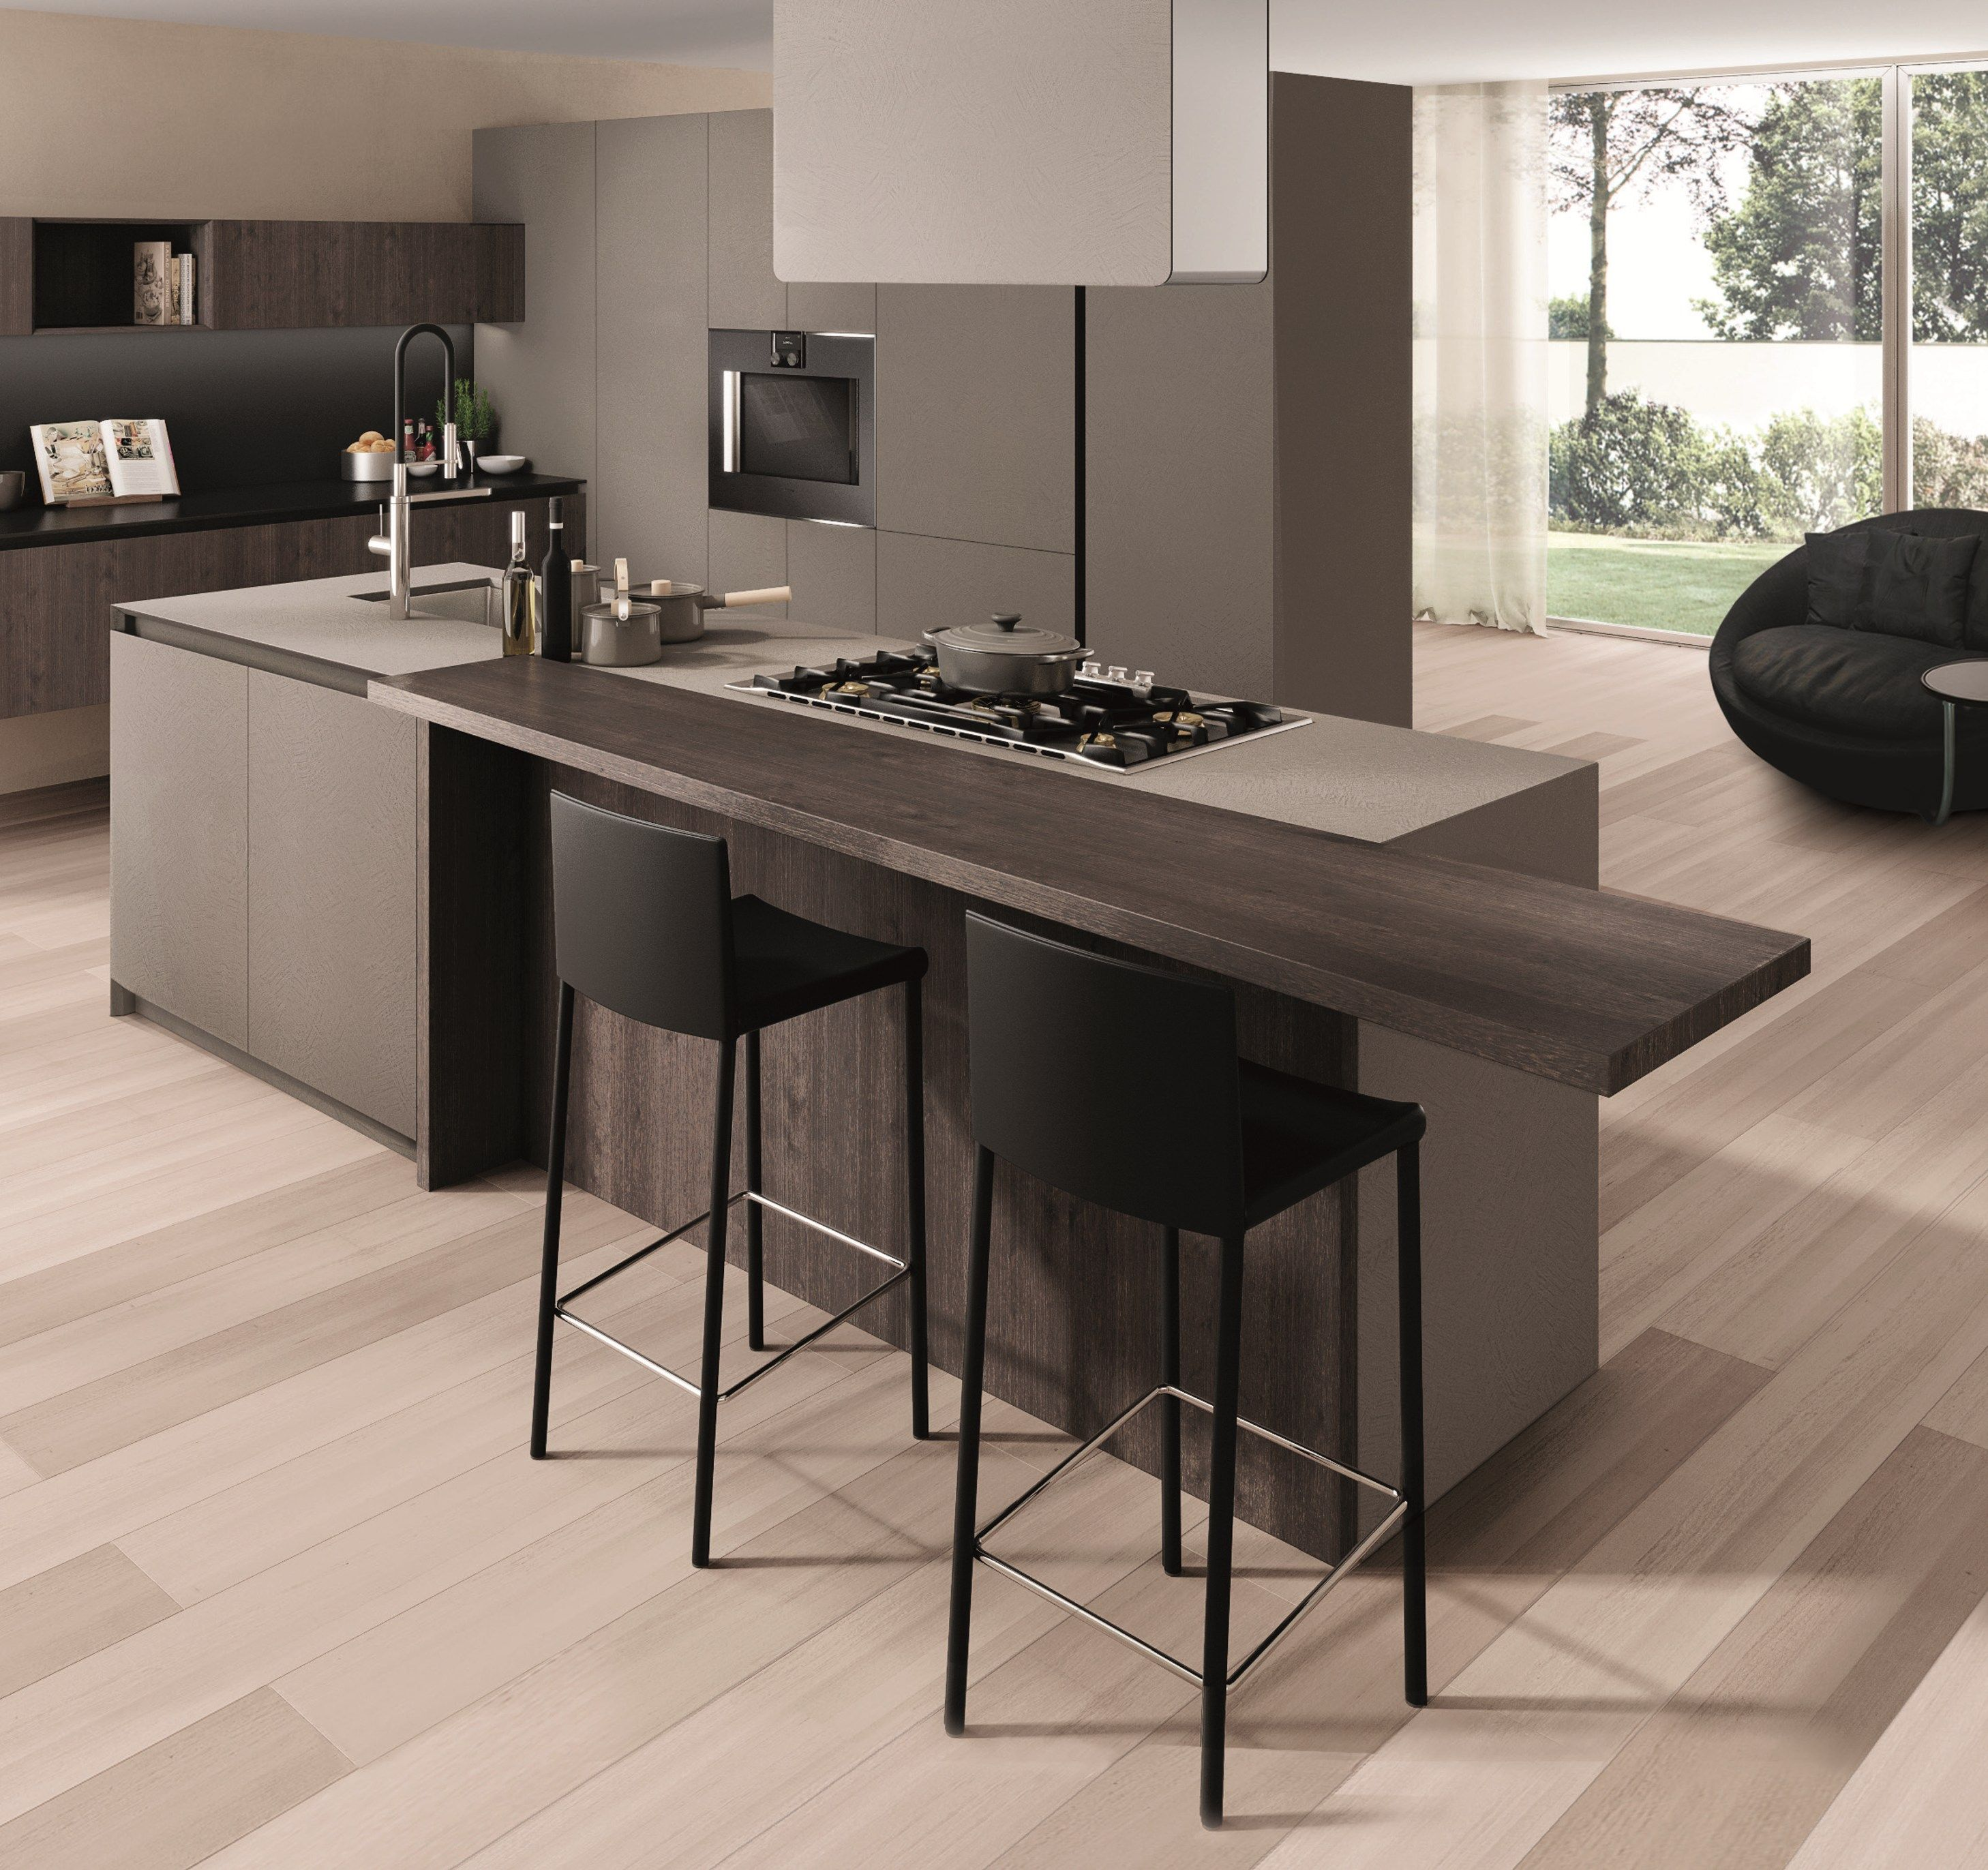 Wooden Fitted Kitchen Filoantis By Gruppoeuromobil Design Roberto Gobbo Kitchens Design